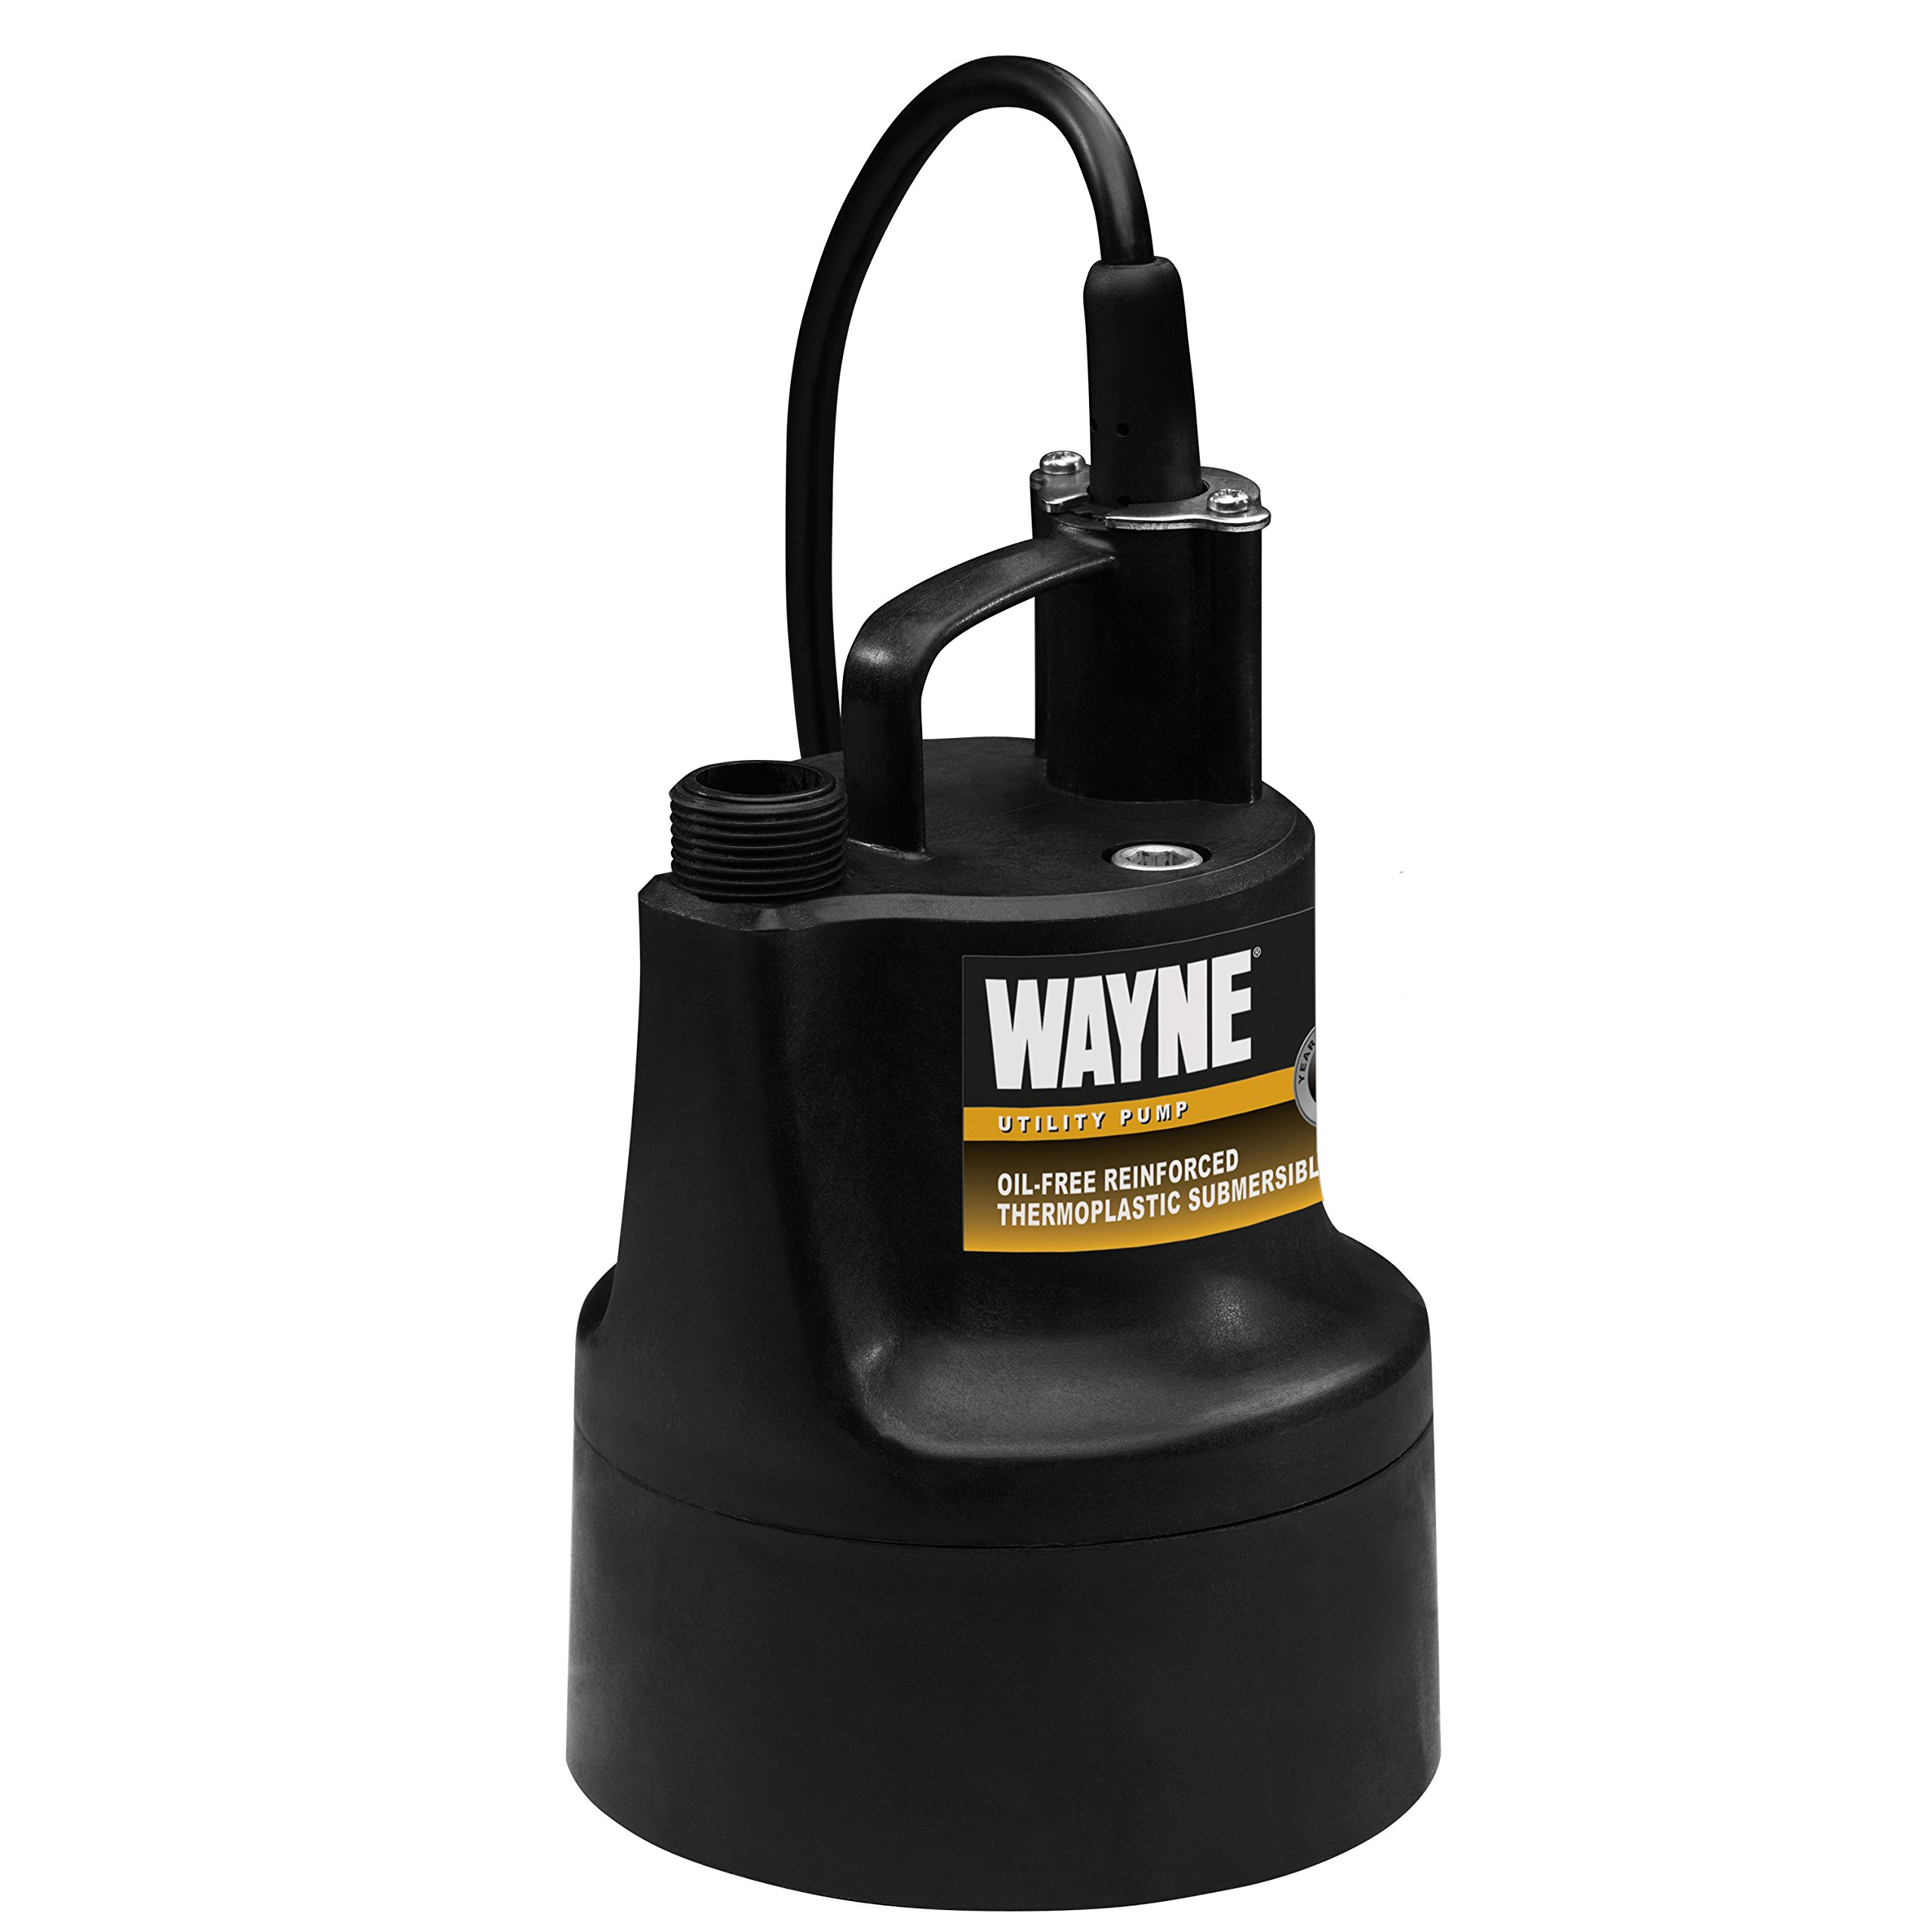 WAYNE GFU110 Portable, Light Duty, Electric Water Removal Pump by Wayne